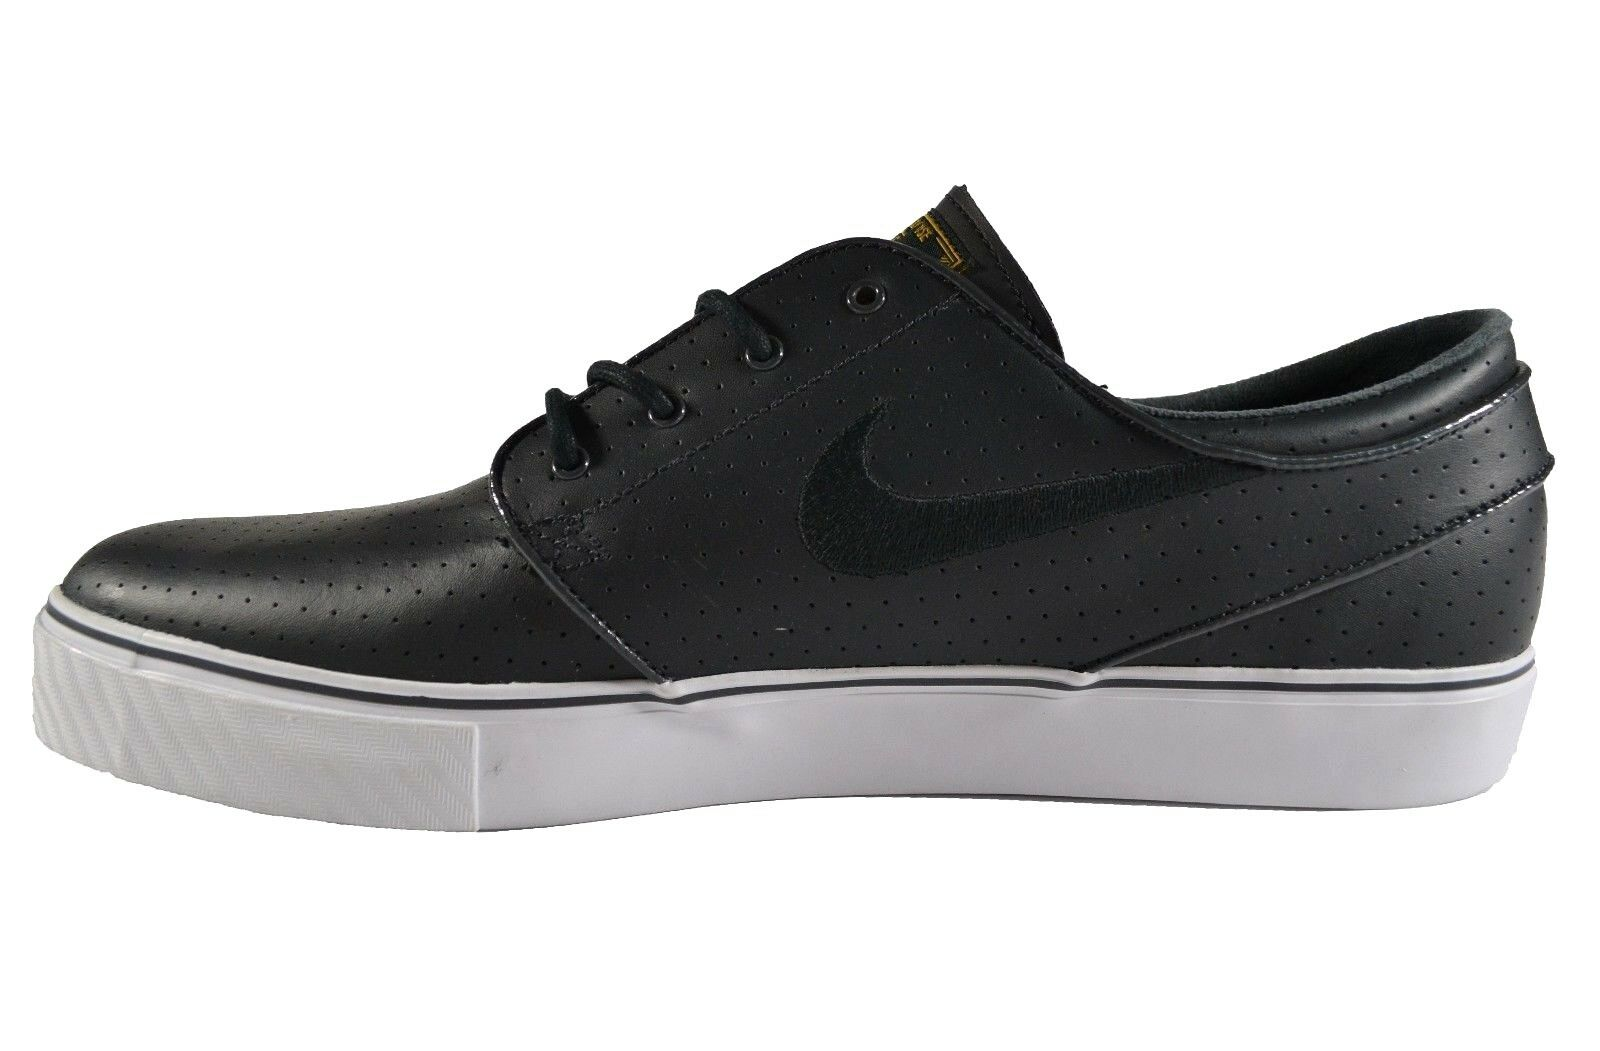 Nike ZOOM STEFAN JANOSKI Hommes Anthracite Noir Discounted  Hommes JANOSKI  Chaussures 1f637c